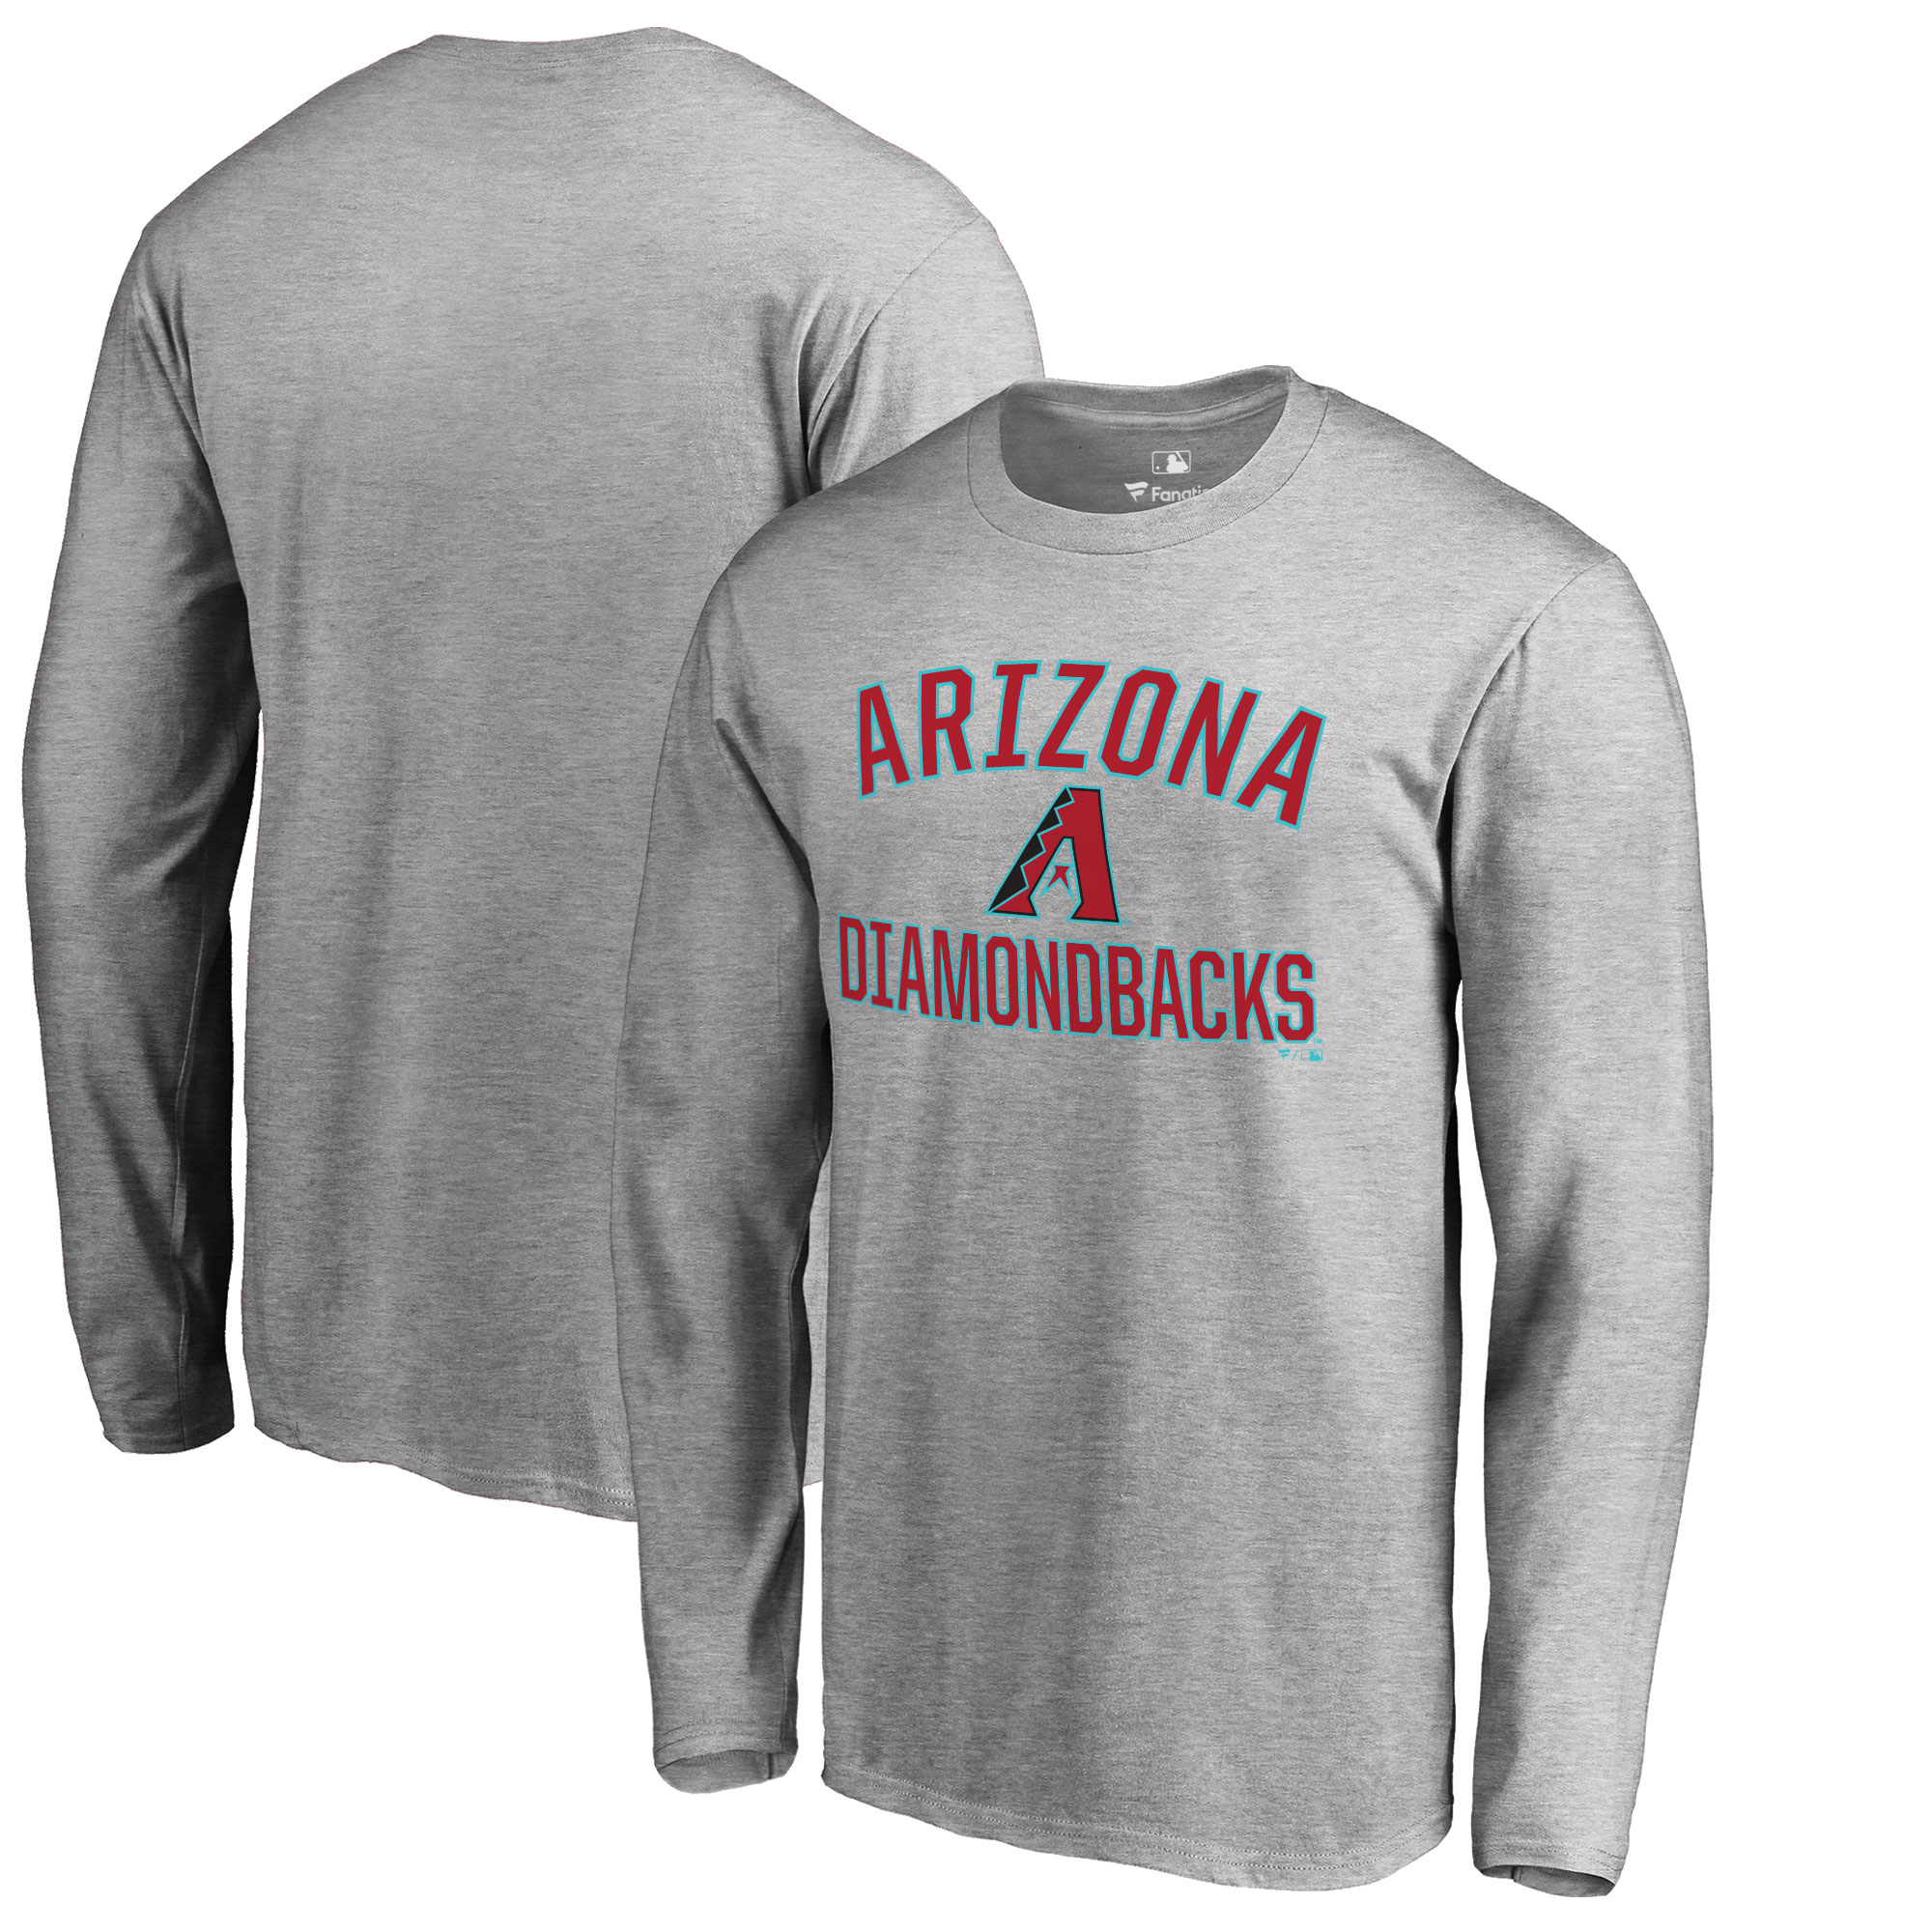 Arizona Diamondbacks Big & Tall Victory Arch Long Sleeve T-Shirt - Ash